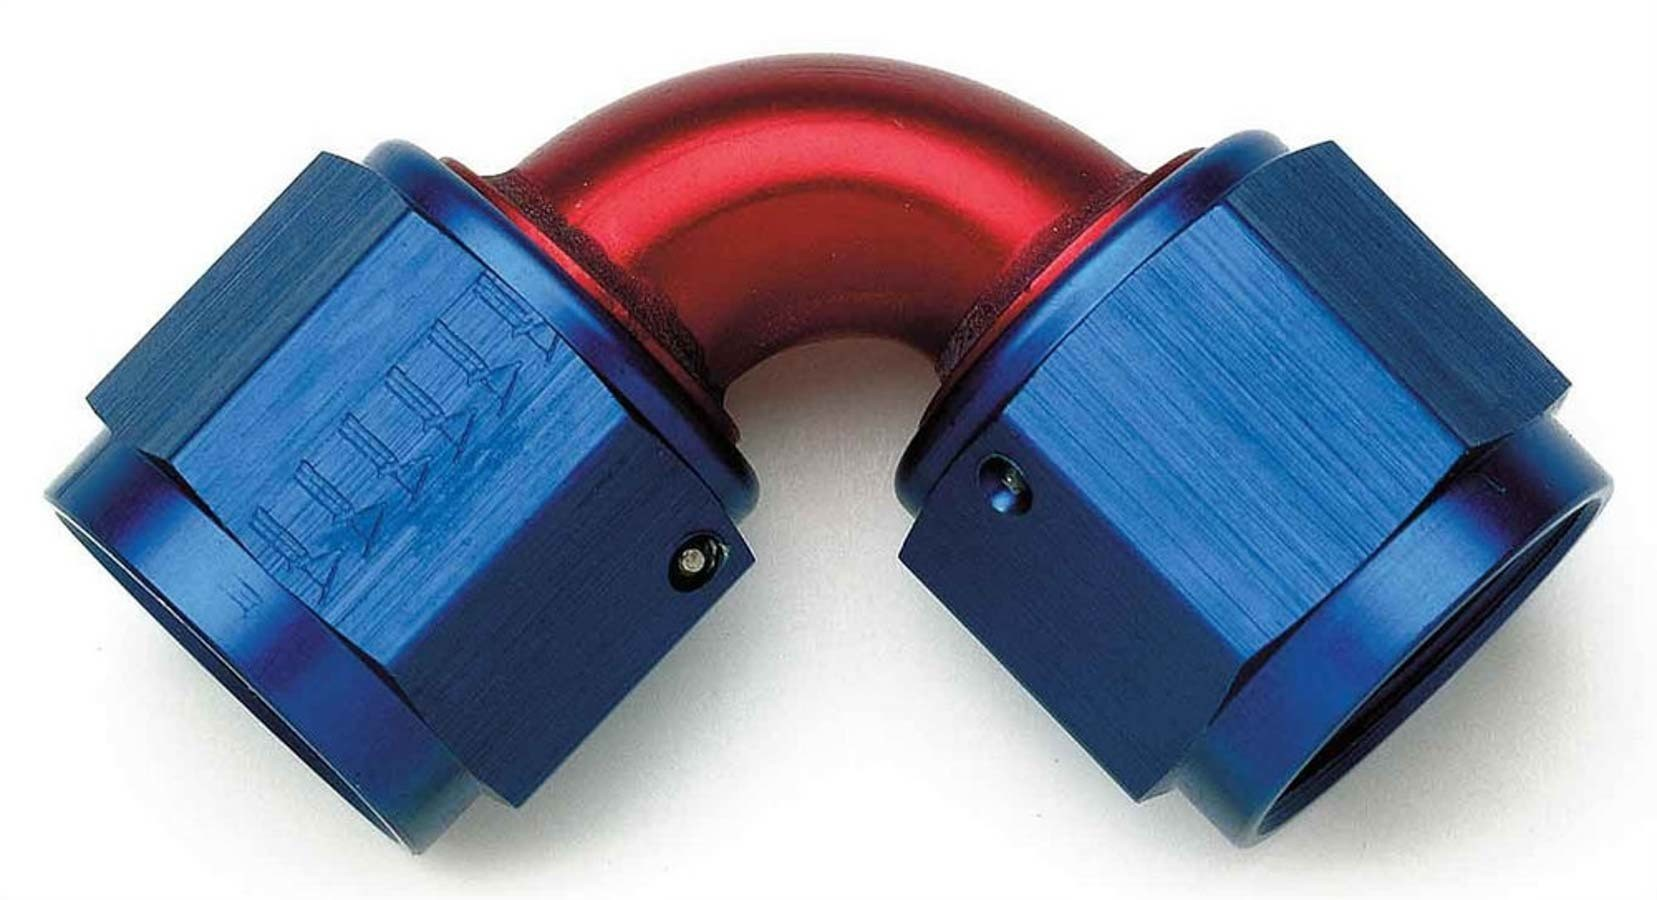 Aeroquip FCM2978 Fitting, Adapter, 90 Degree, 6 AN Female Swivel to 6 AN Female Swivel, Aluminum, Blue / Red Anodize, Each